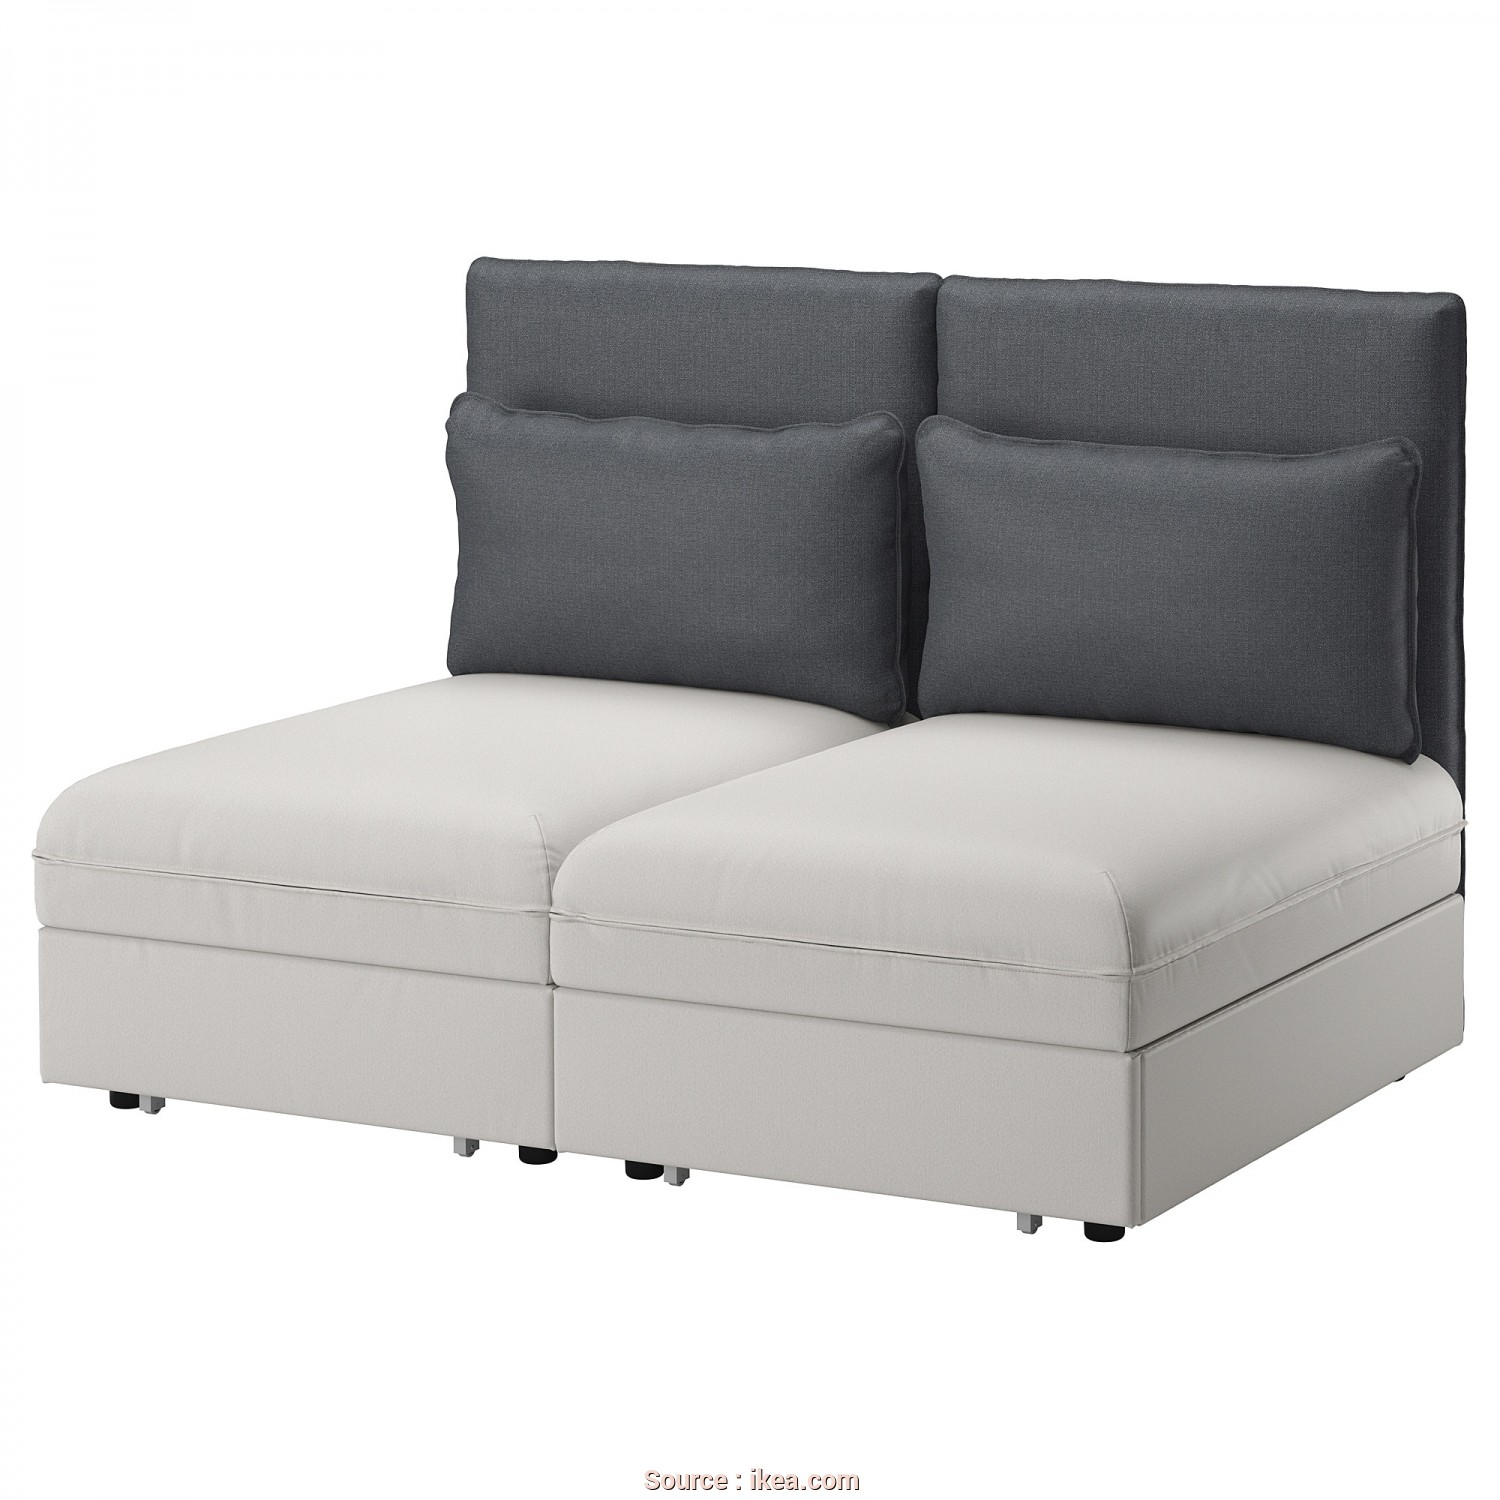 Futon Ikea Sofa Bed, Ideale IKEA VALLENTUNA 2-Seat Sofa With, This Combination Converts Easily Into A Bed